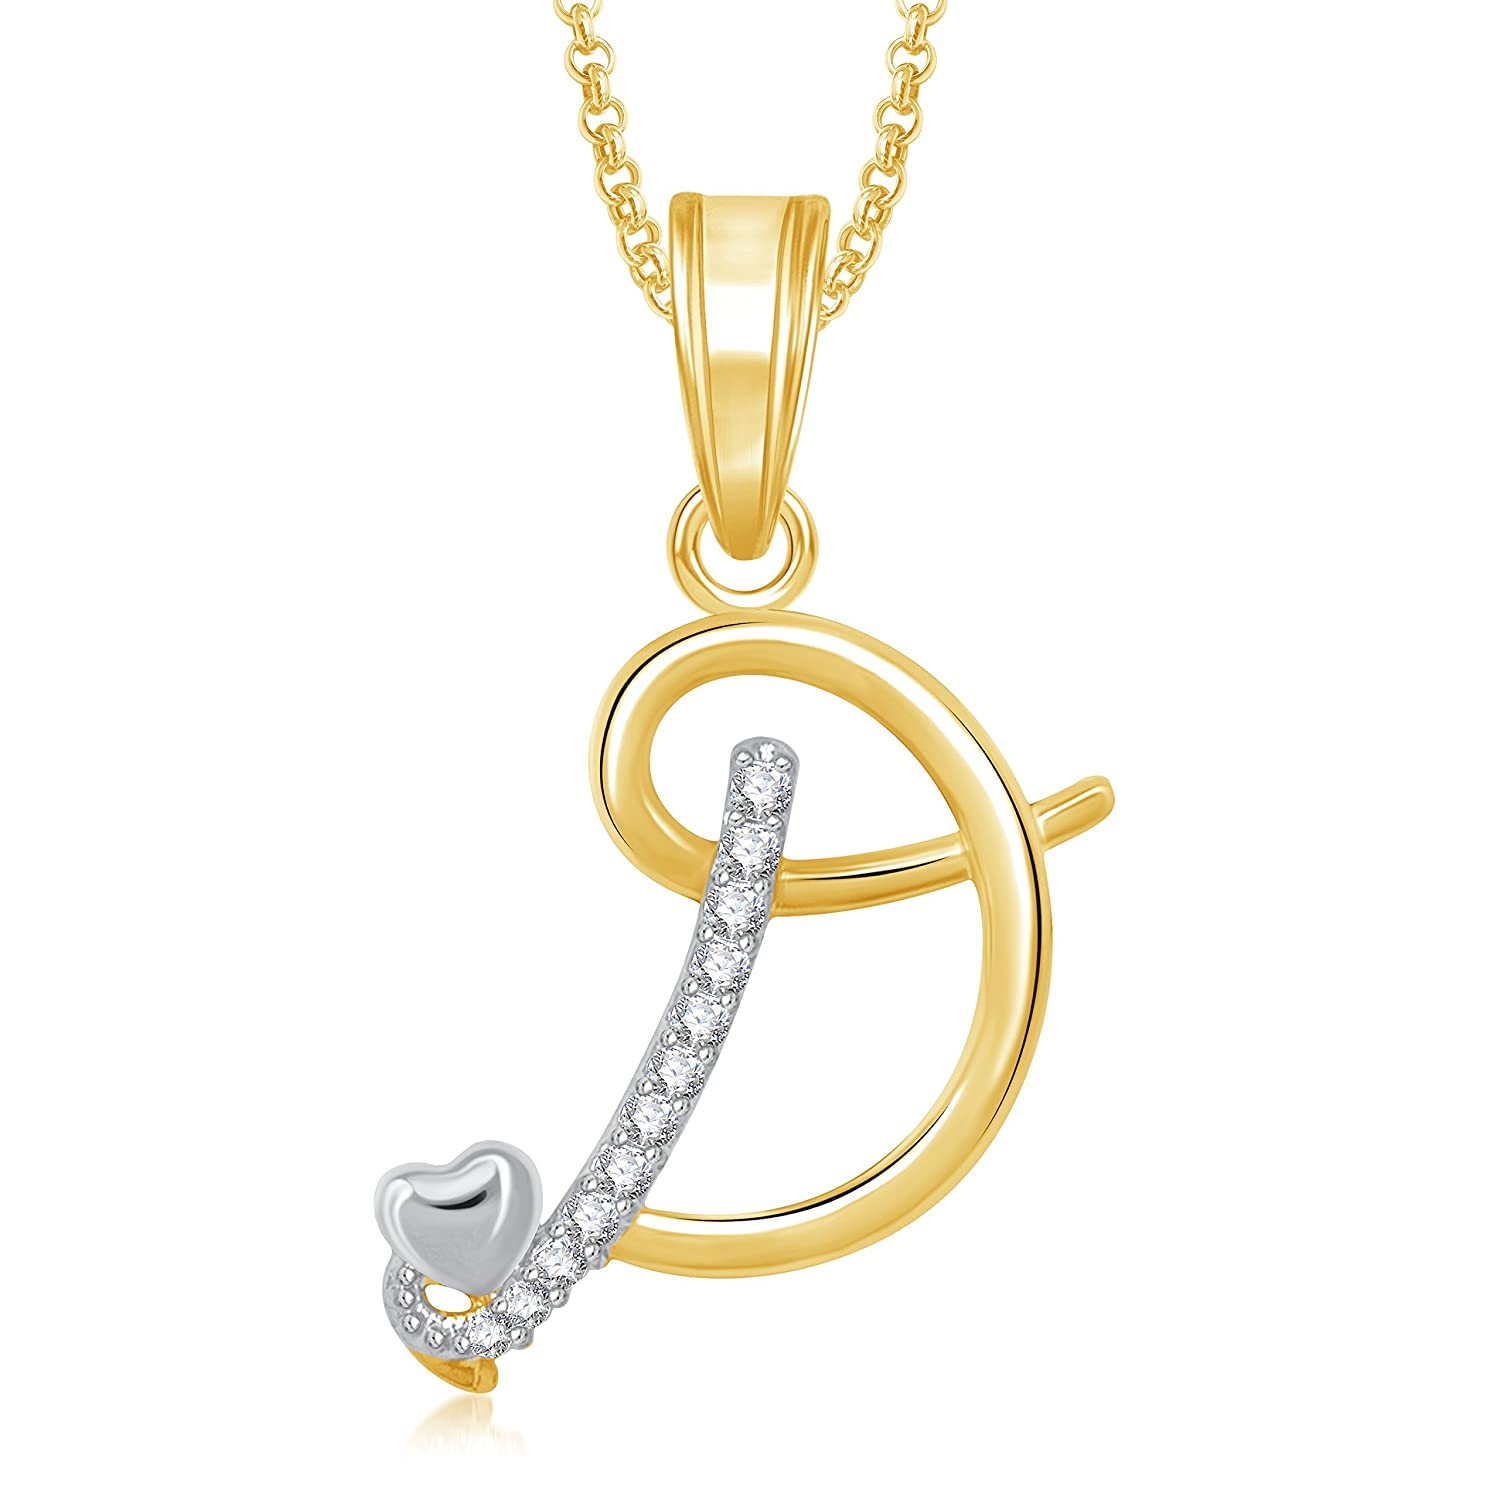 Buy meenaz gold plated american diamond d letter pendant pendant buy meenaz gold plated american diamond d letter pendant pendant for unisex online at low prices in india amazon jewellery store amazon aloadofball Image collections